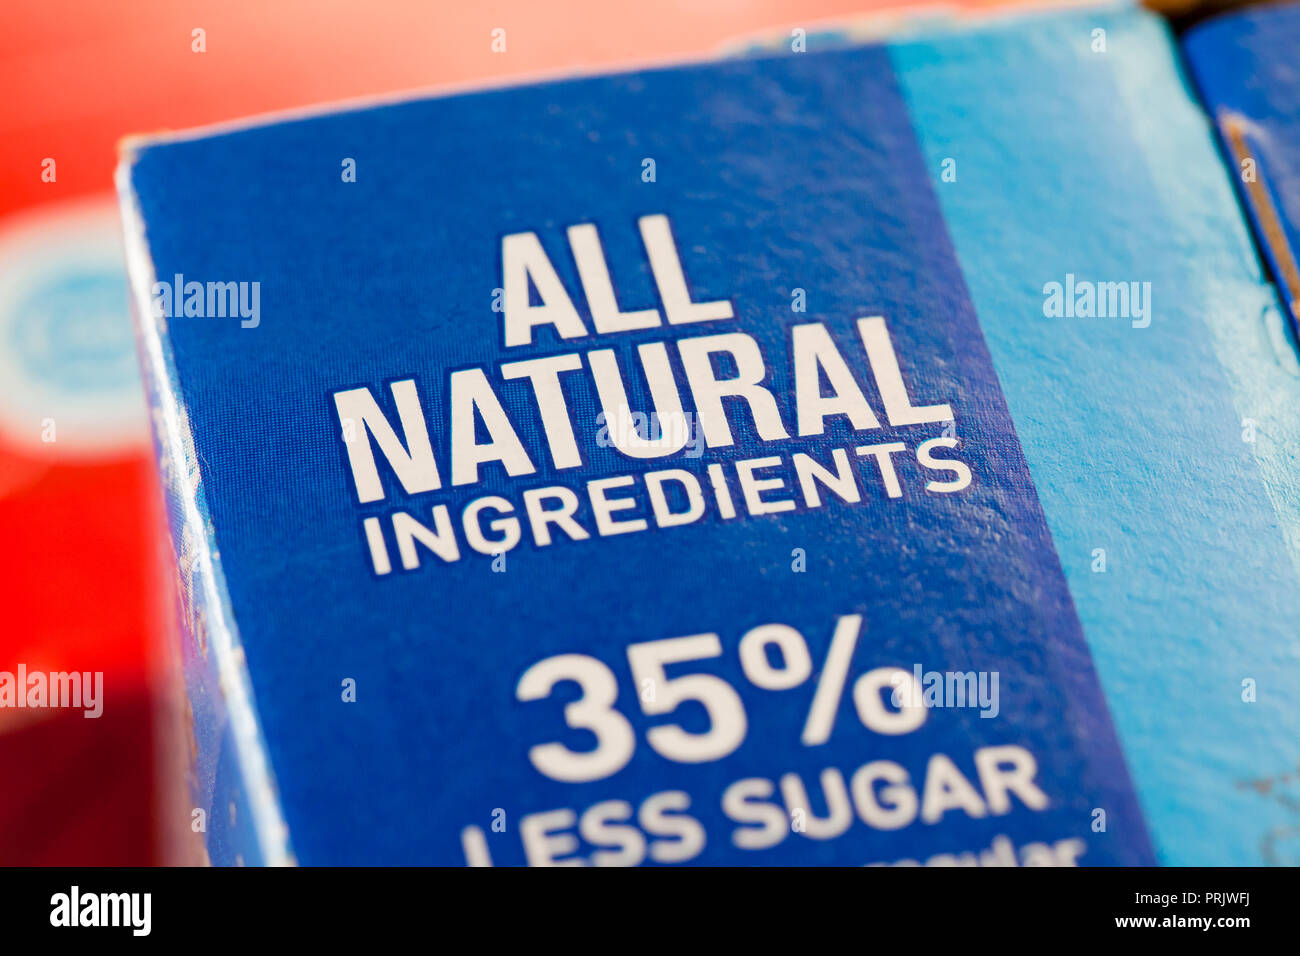 'All Natural Ingredients' claim on juice packaging - USA - Stock Image